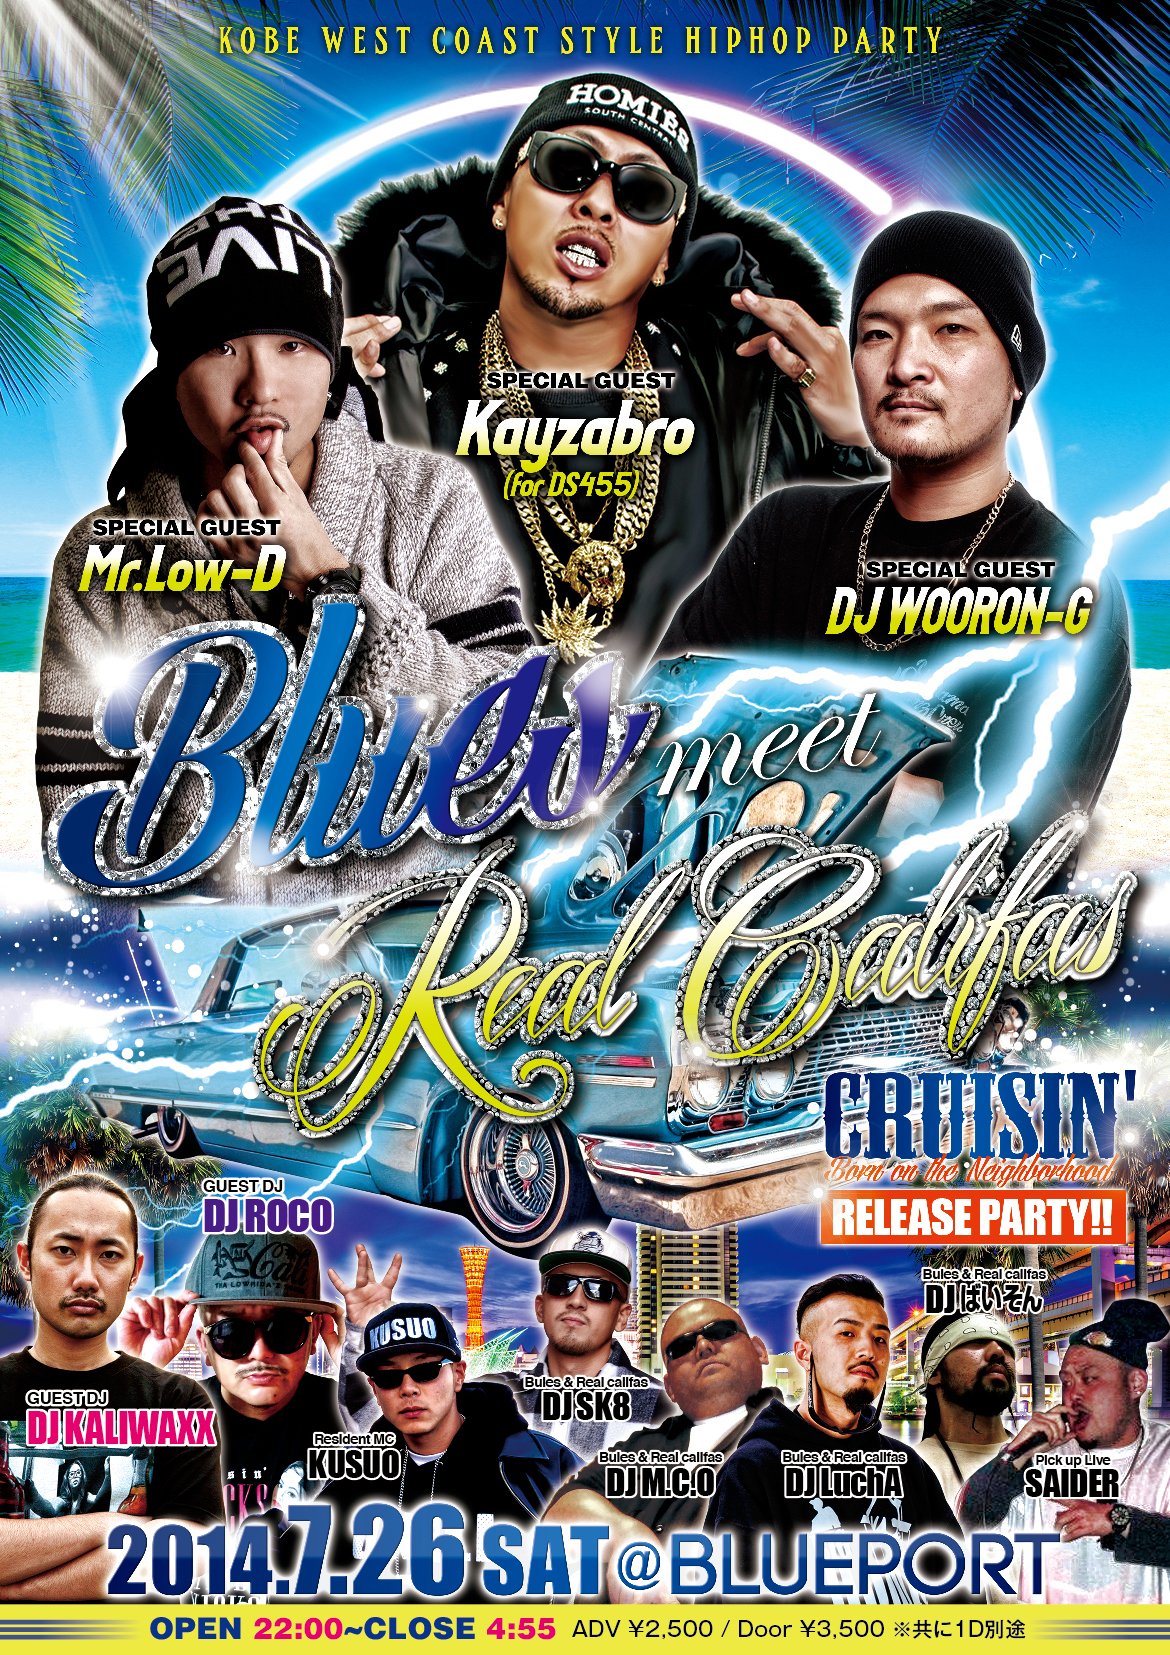 『Blues 』meet 『Real califas』 CRUISIN' -Born on the Neighborhood- Release party!!